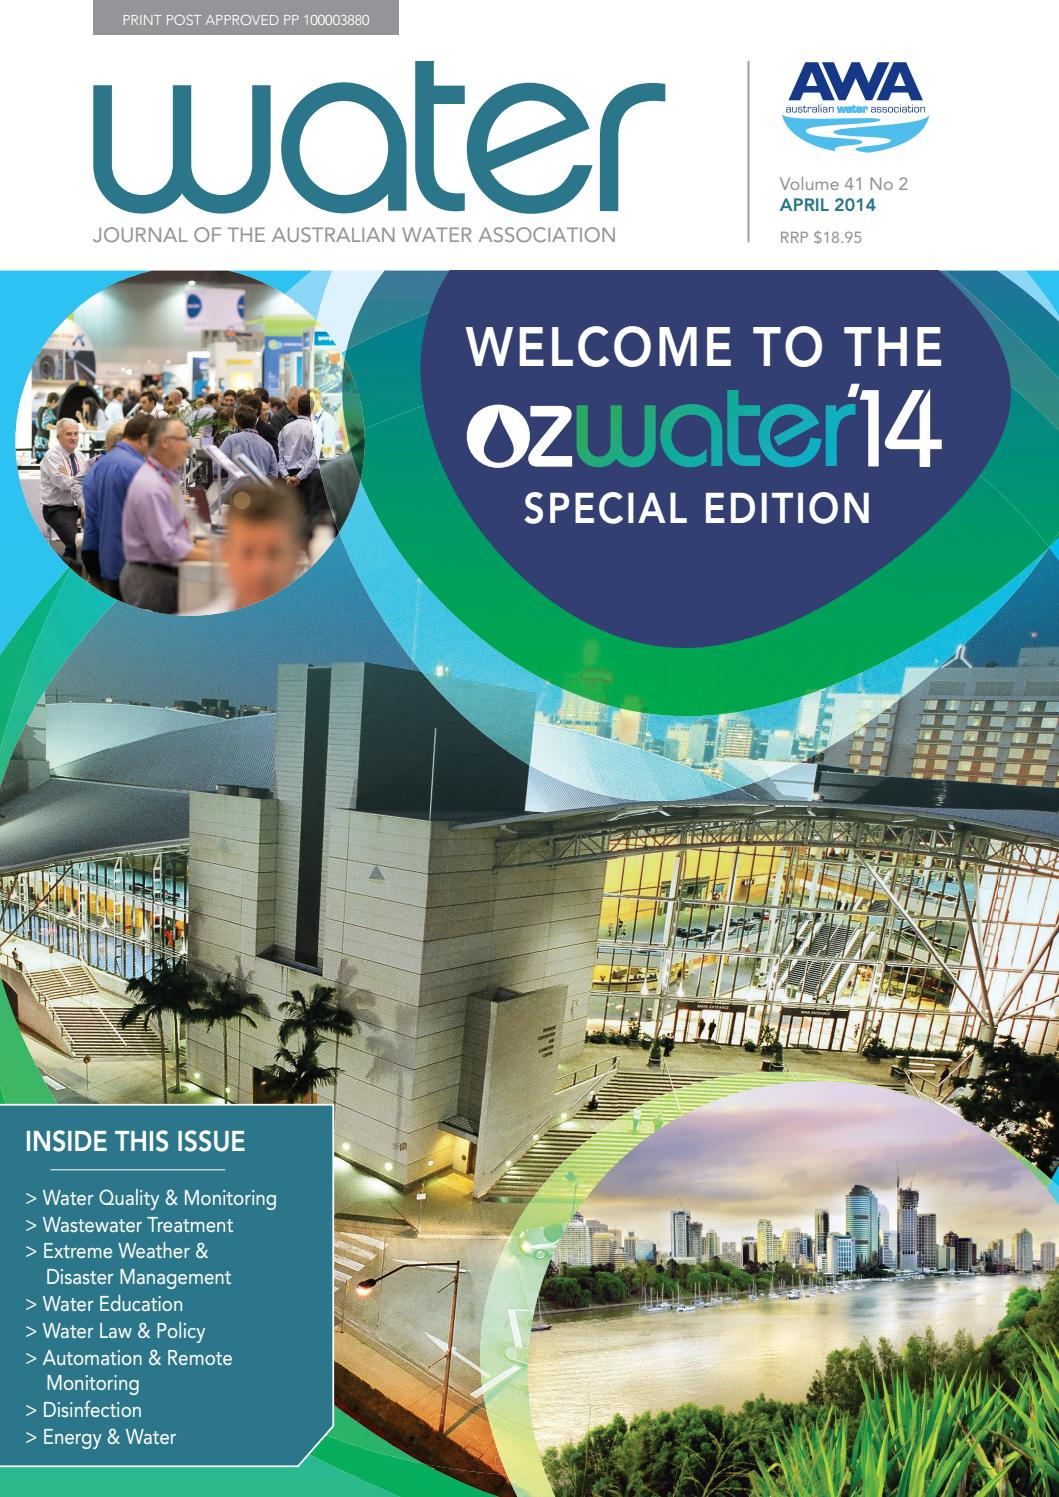 Water Journal April 2014 By Australianwater Issuu 2016 220v 5g Diy Ozone Generator And Circuit Board For Air Or